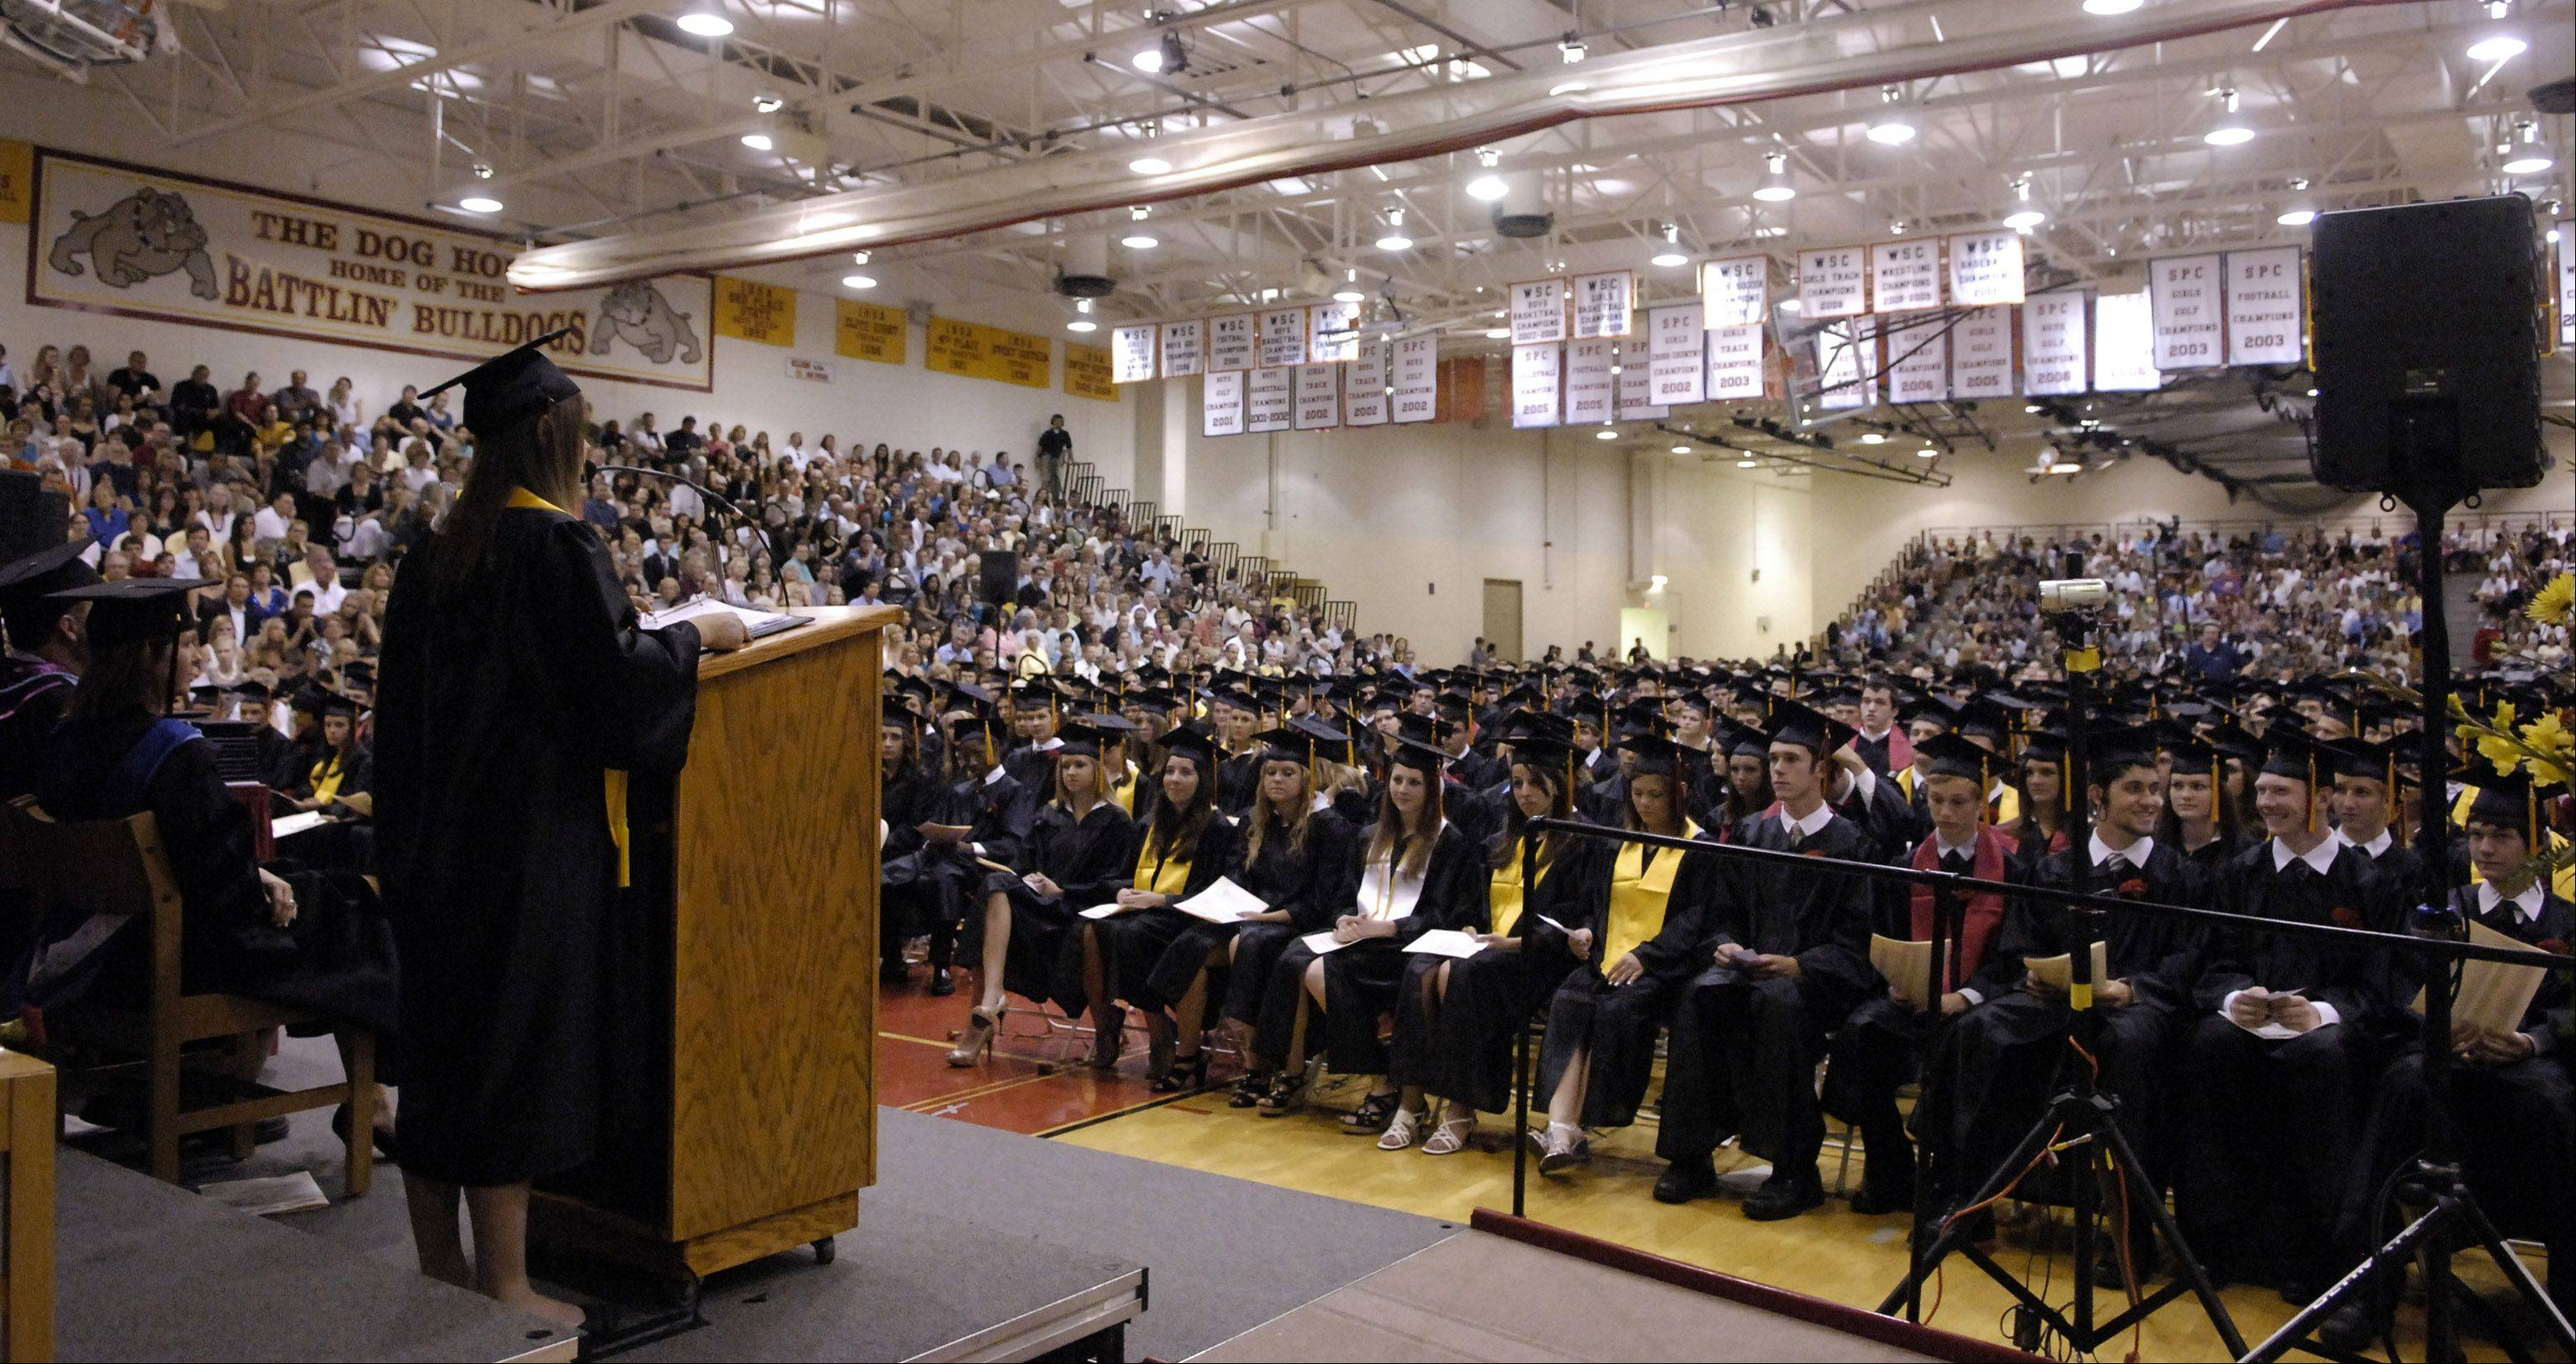 The gymnasium at Batavia High School is always packed for graduation ceremonies. The school is considering moving the event off-site in 2013 to allow for more guests.